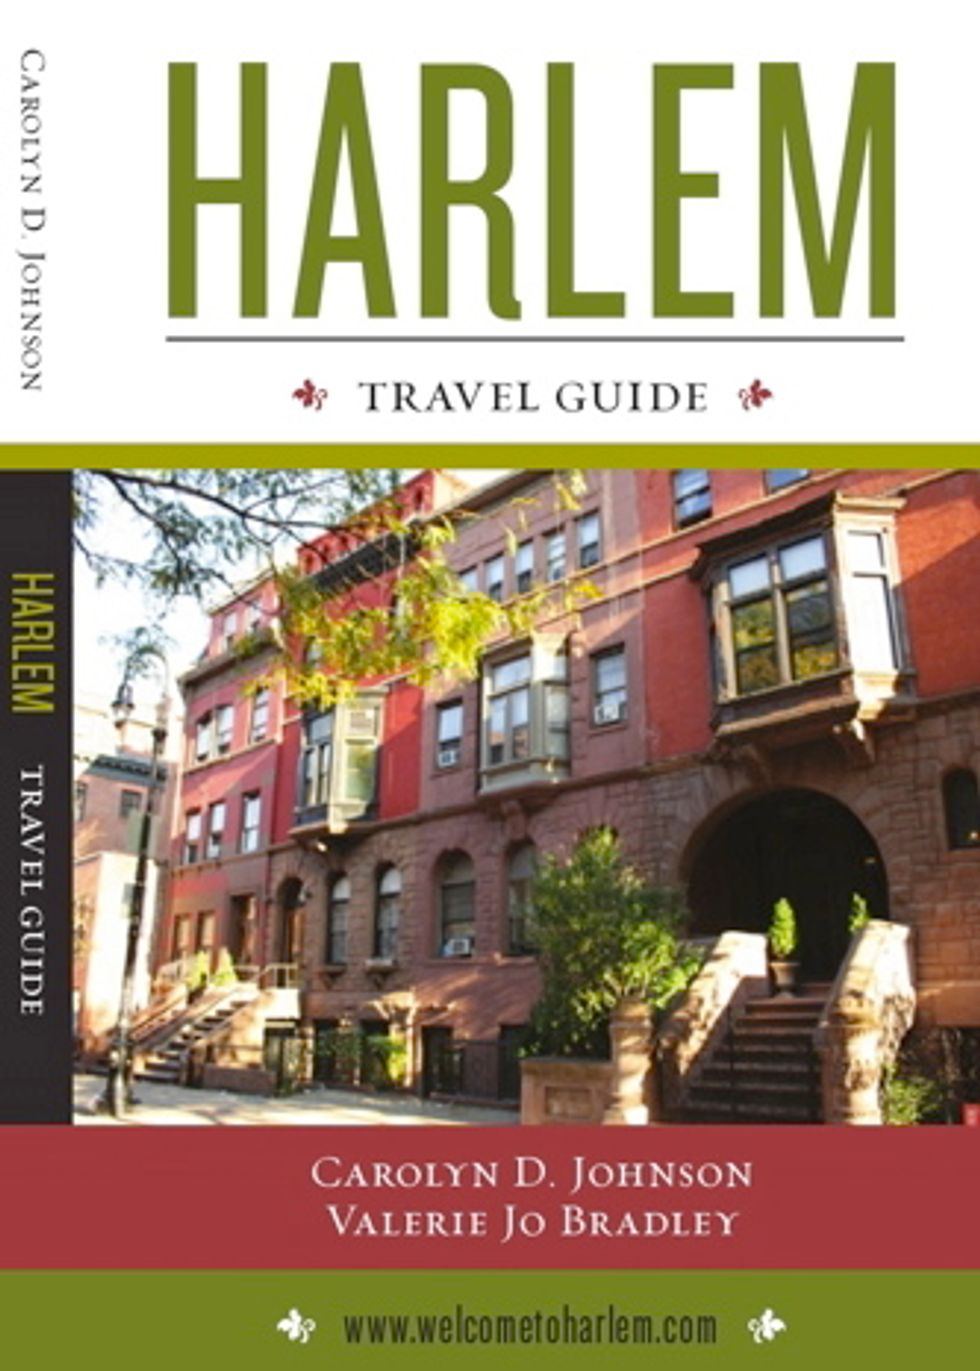 The New Must-Have Book for All Things Harlem